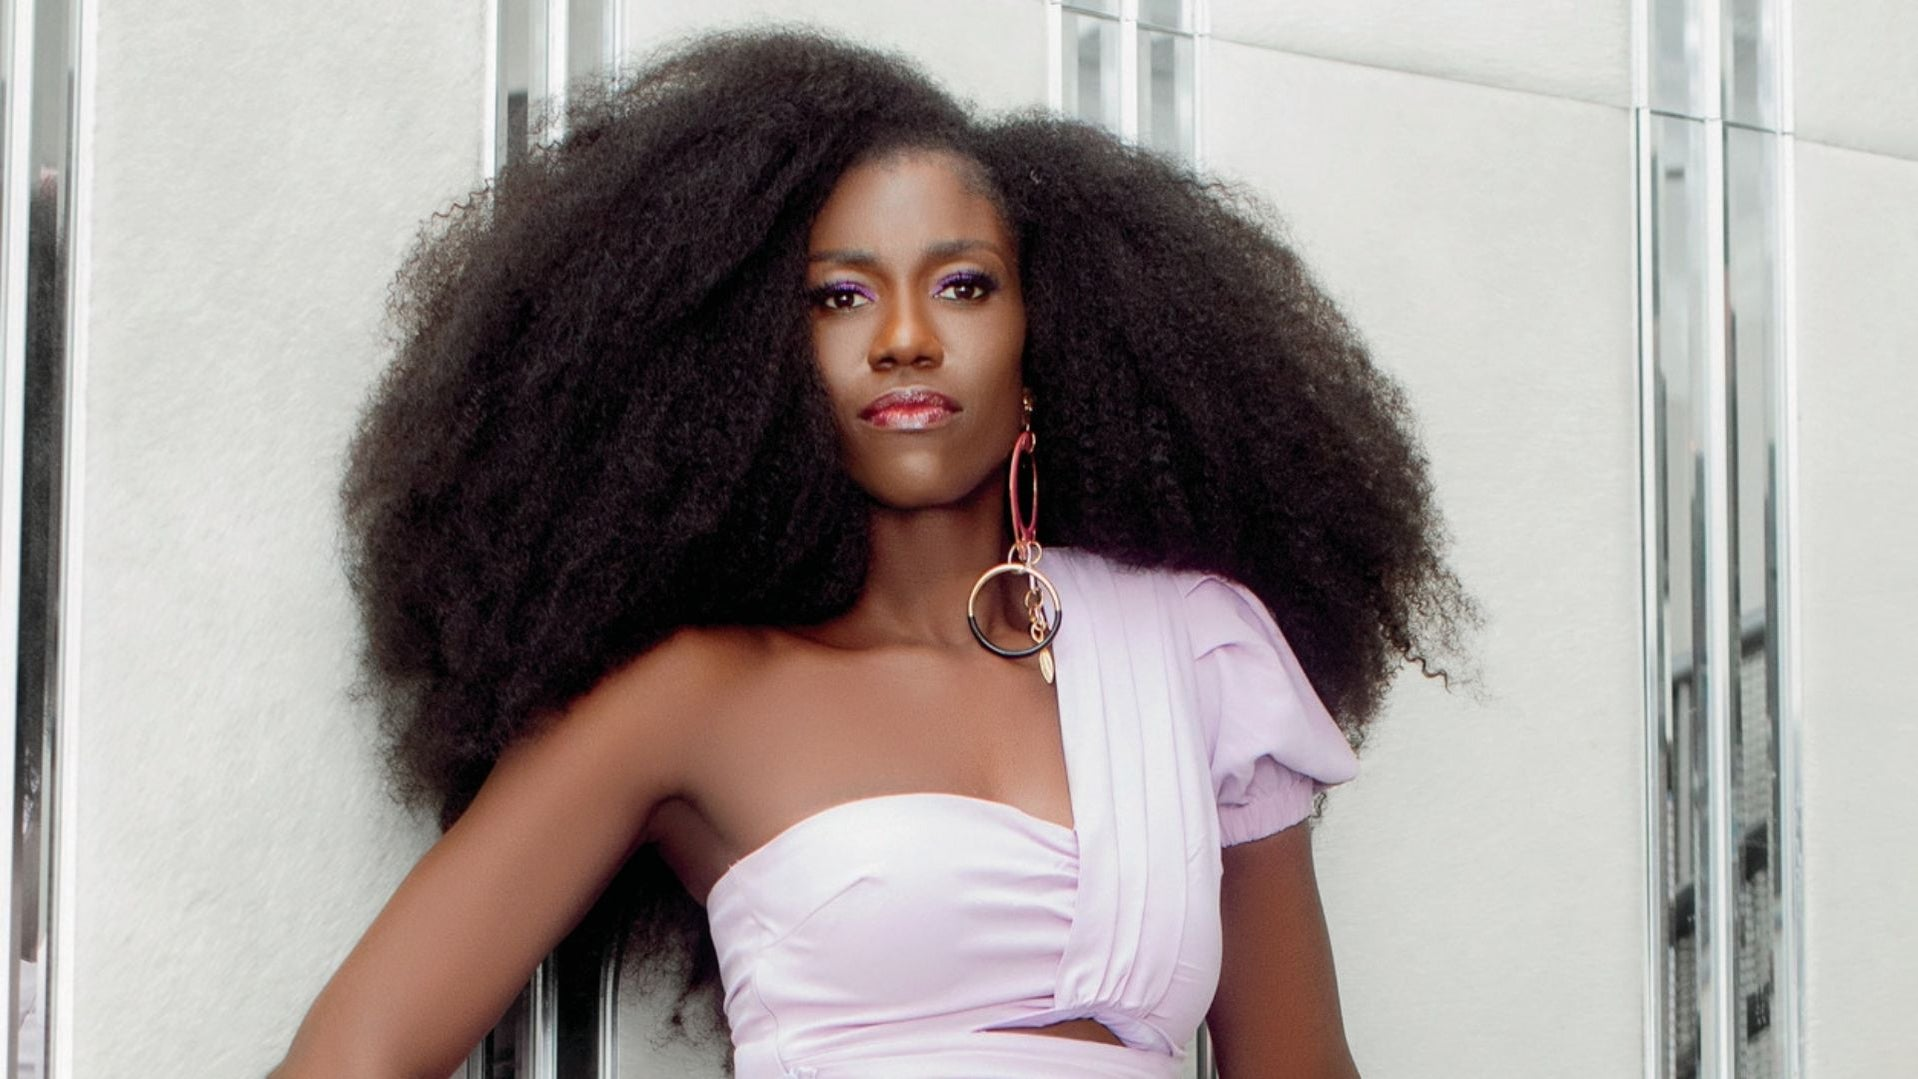 Bozoma Saint John Wants Black Women To Have Permission To Be Themselves In Every Space They're In